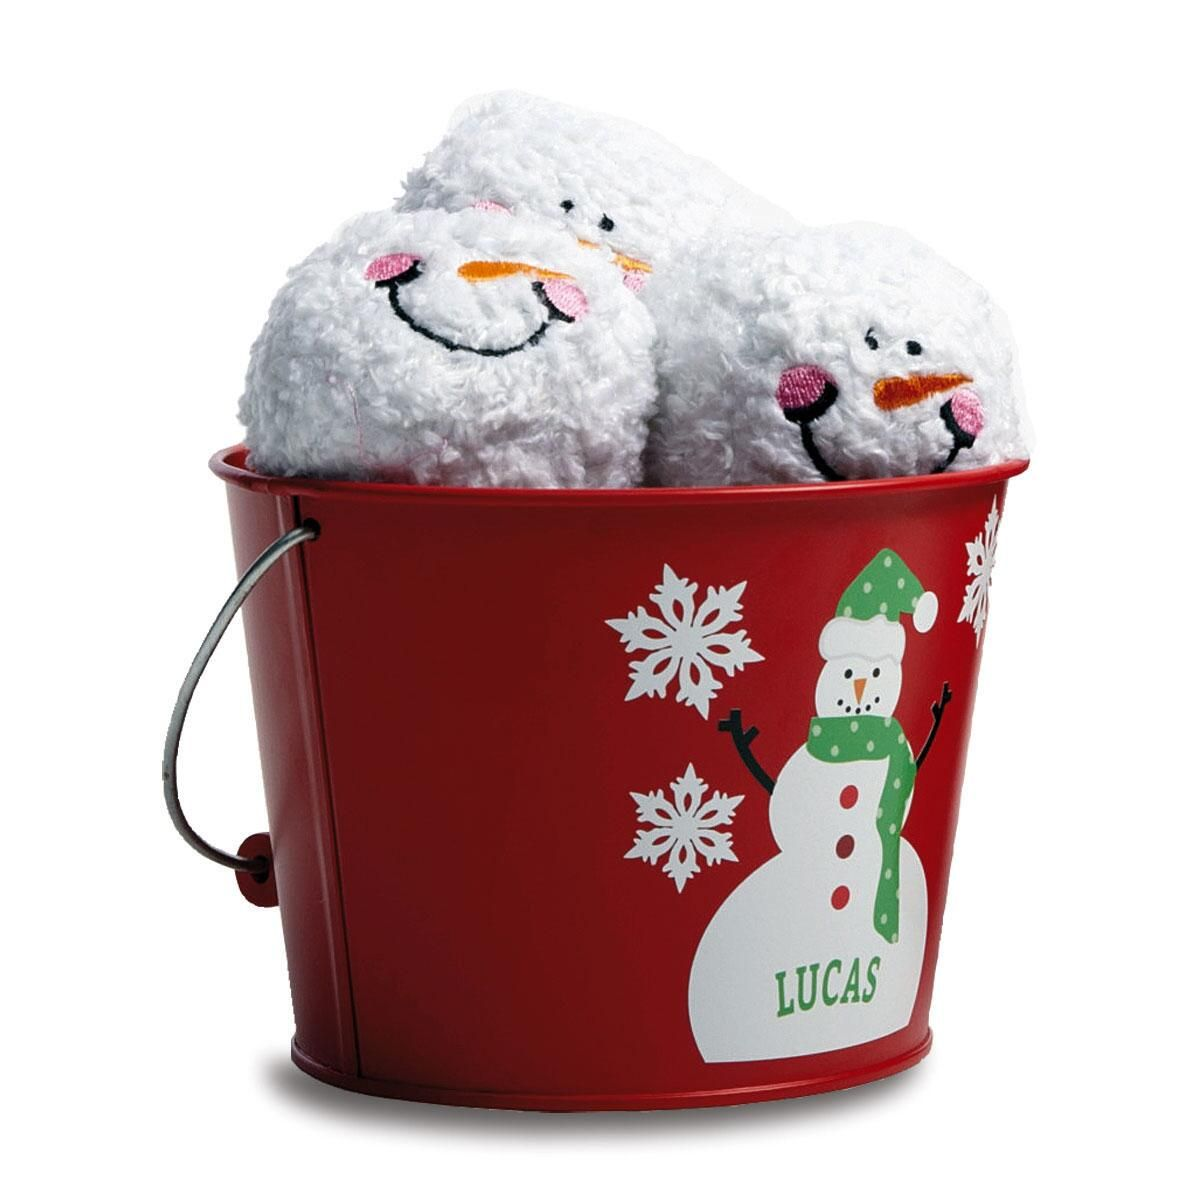 Snowman Indoor Snowball Fight Kit by Designer Maureen Anders